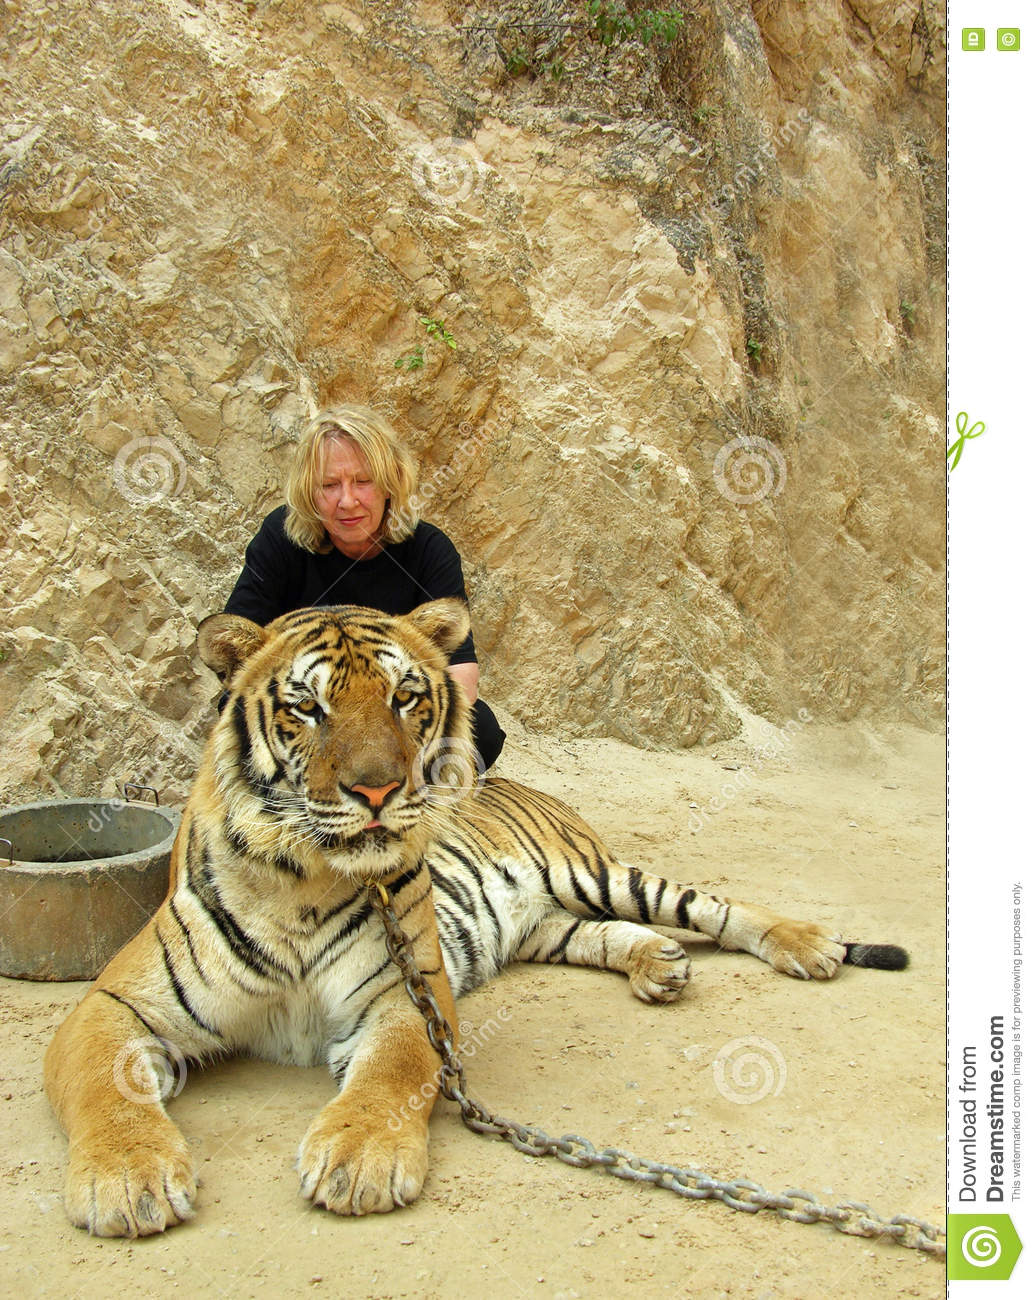 Download Woman Tourist Frowning In Concern For Cruel Conditions Of Chained Tiger Bangkok Tiger Temple In Thailand Stock Photo - Image of face, animal: 72951306